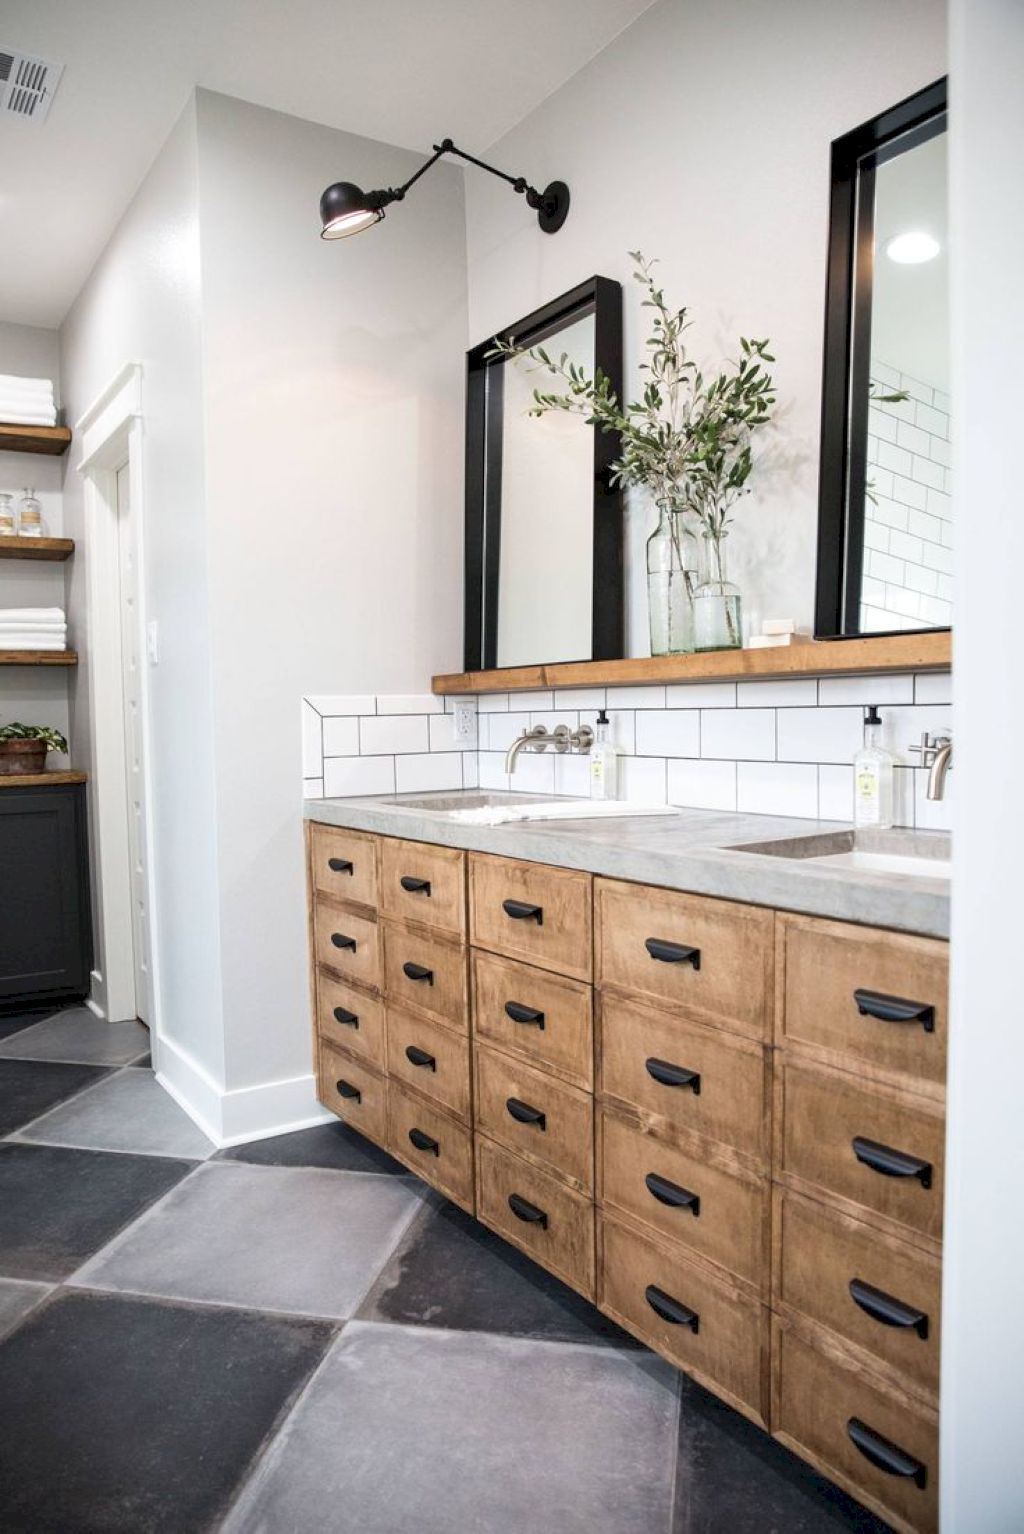 Feel With Black Accessories And Natural Wood Bathroom Vanity Remodel Farmhouse Master Bathroom Bathroom Remodel Master